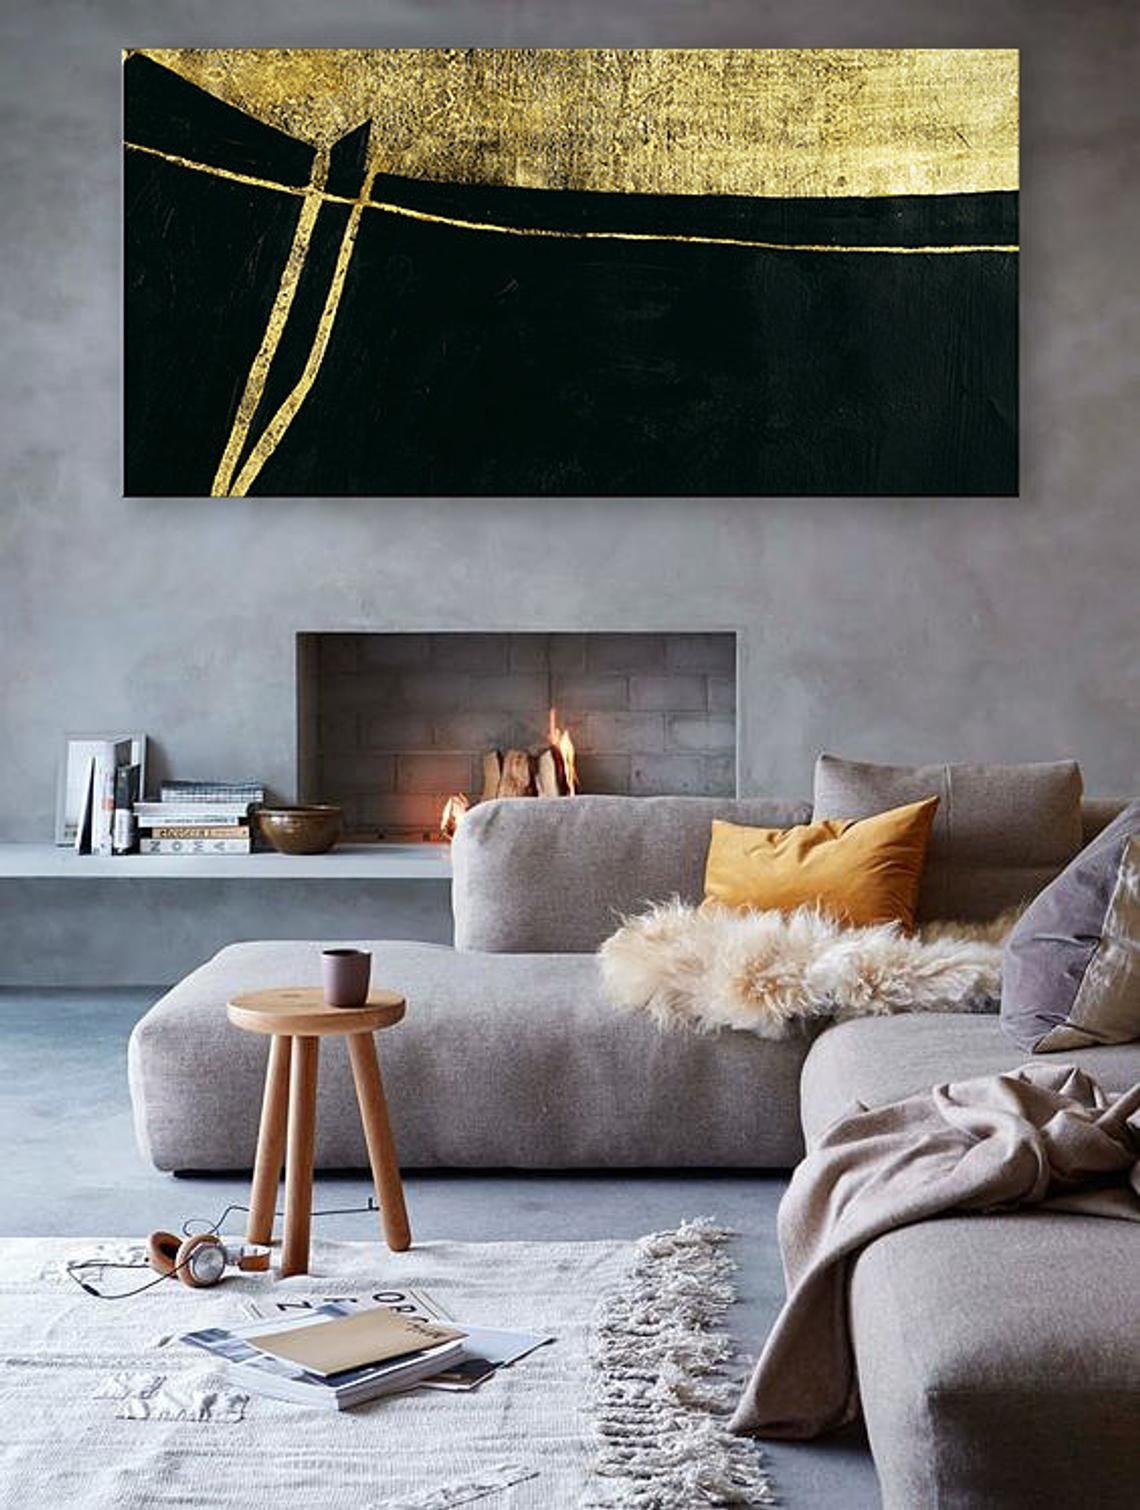 Extra Wide Original Abstract Painting With Gold Leaf Etsy In 2020 Minimalist Living Room Living Room Designs Interior Design